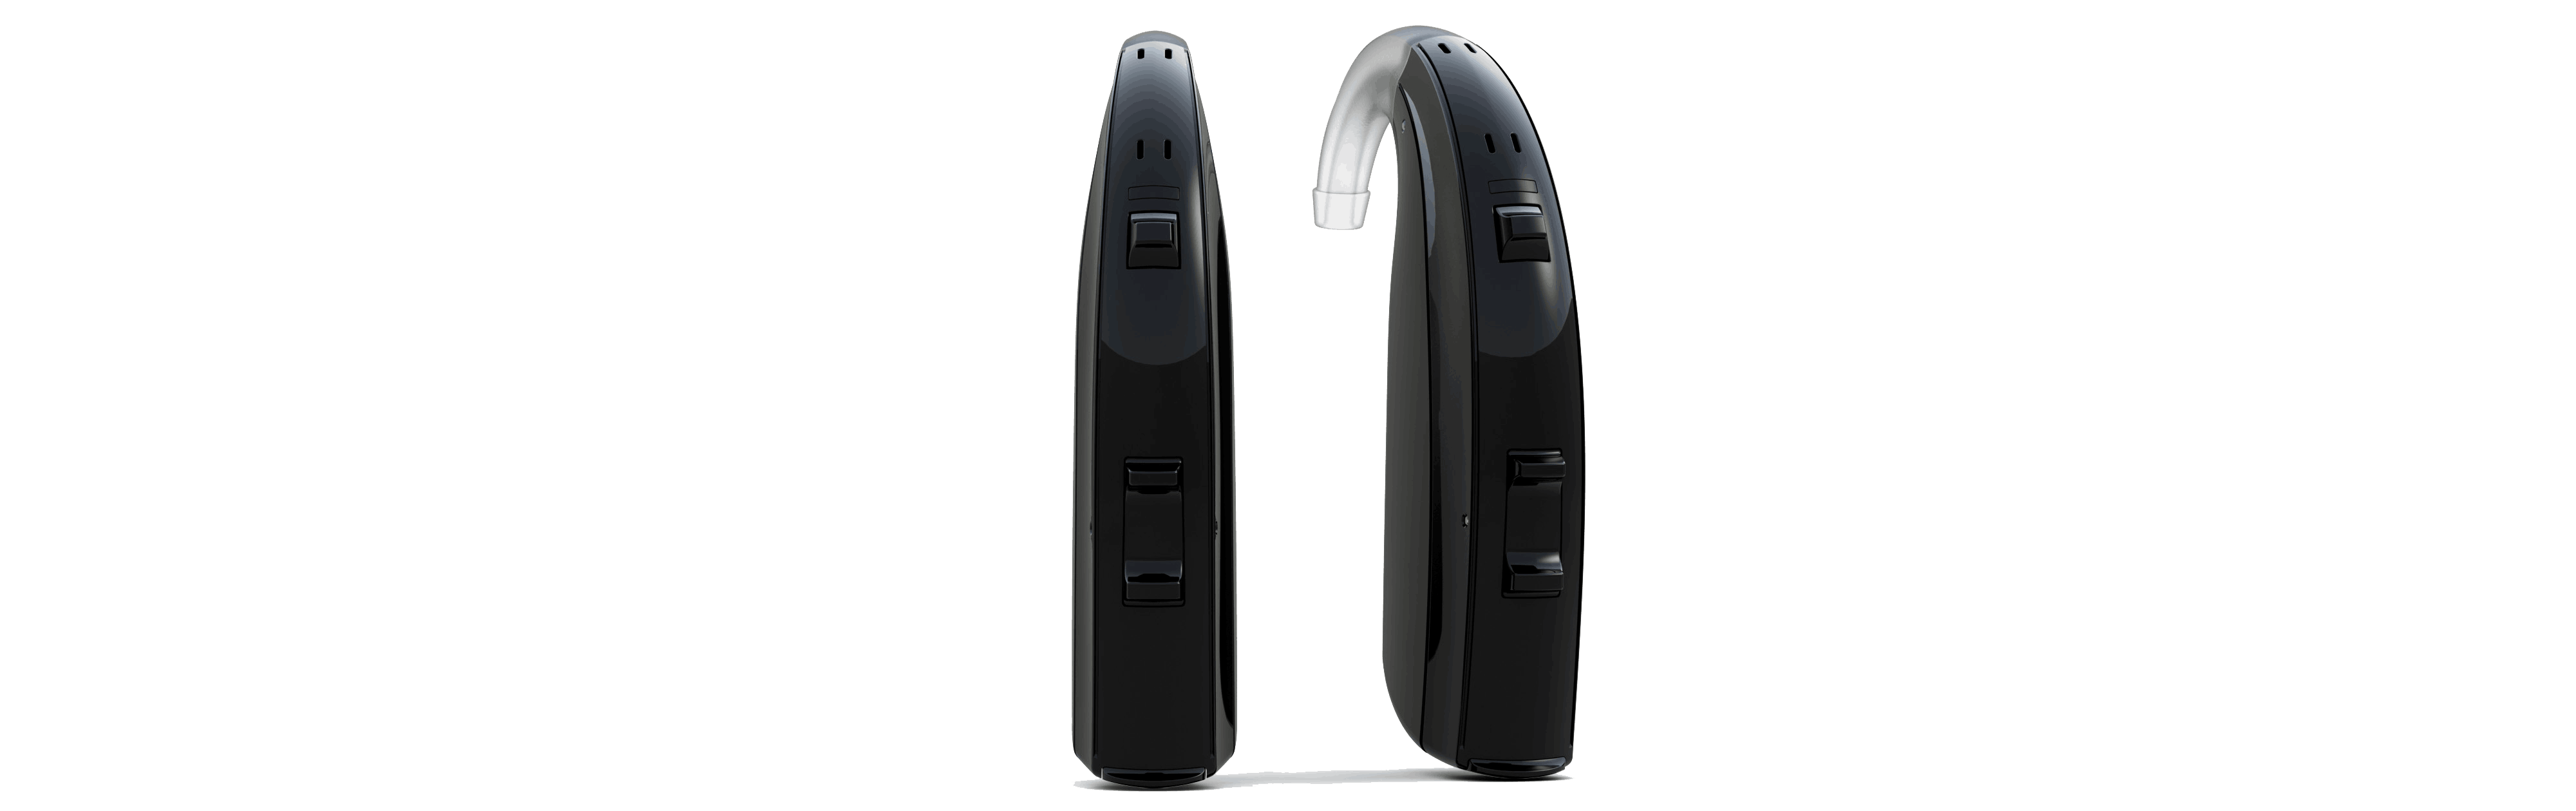 Two powerful ReSound ENZO² hearing aids.